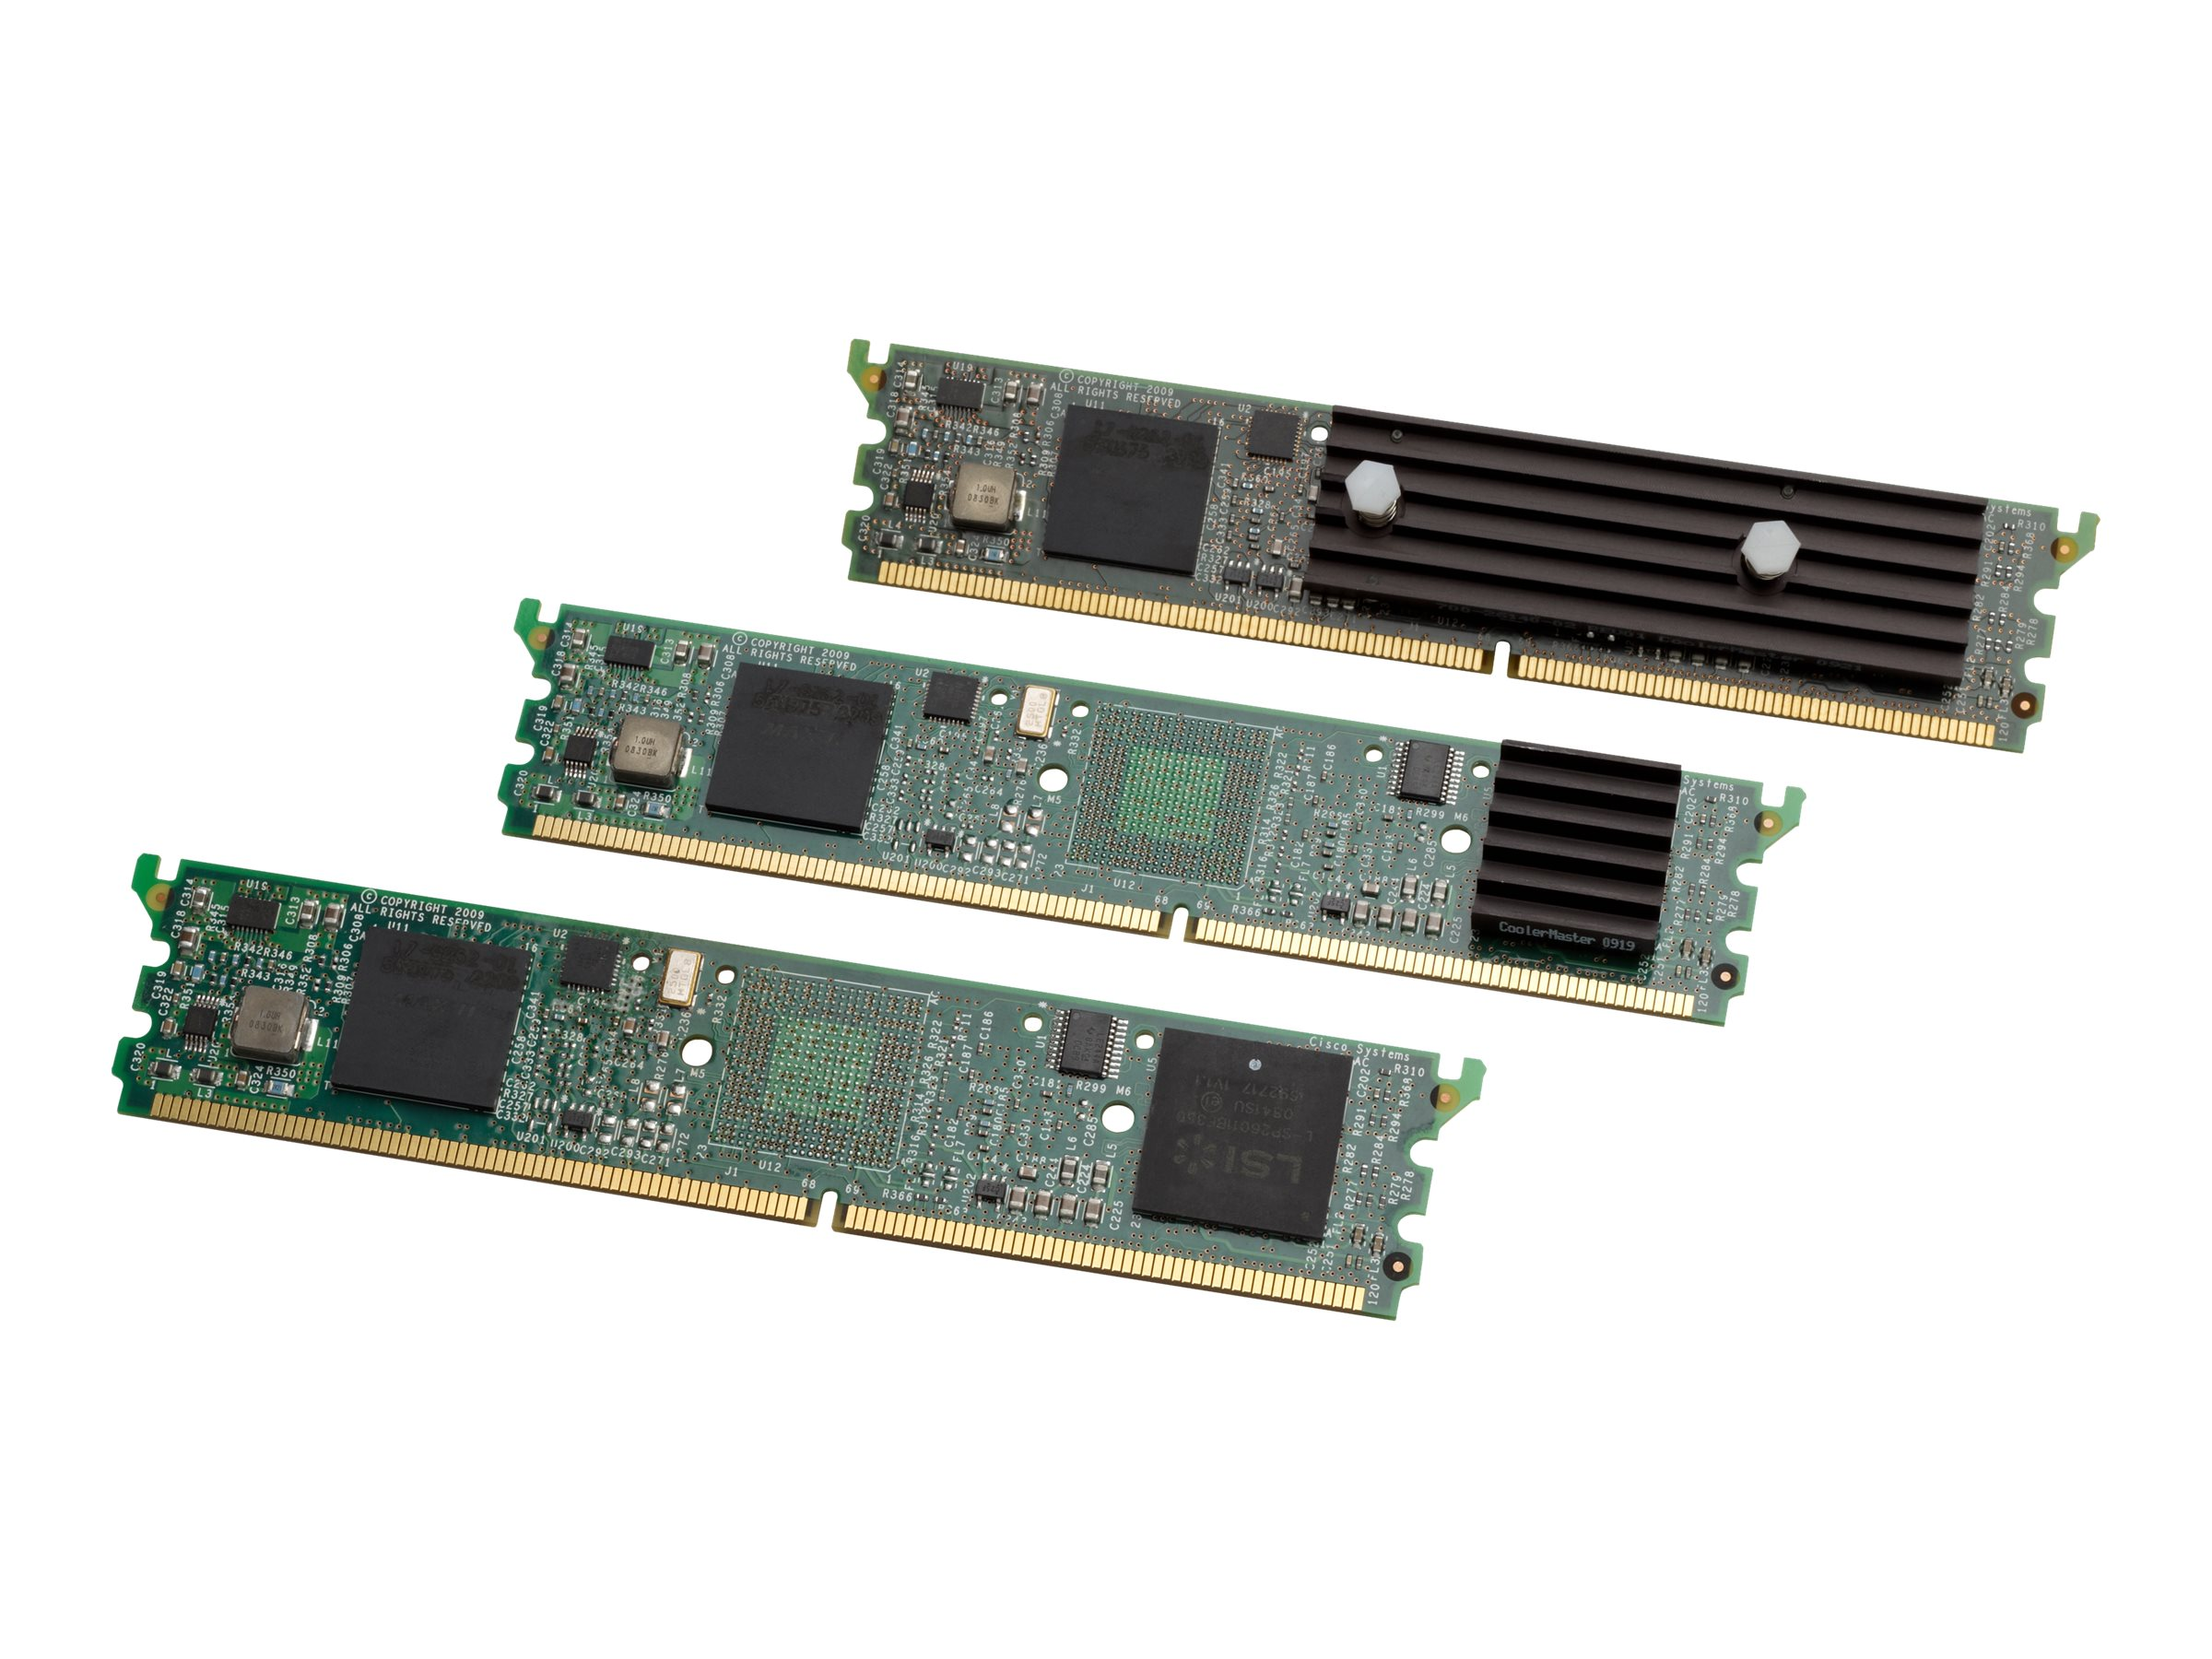 Cisco 256-Channel High-Density Packet Voice and Video Digital Signal Processor Module